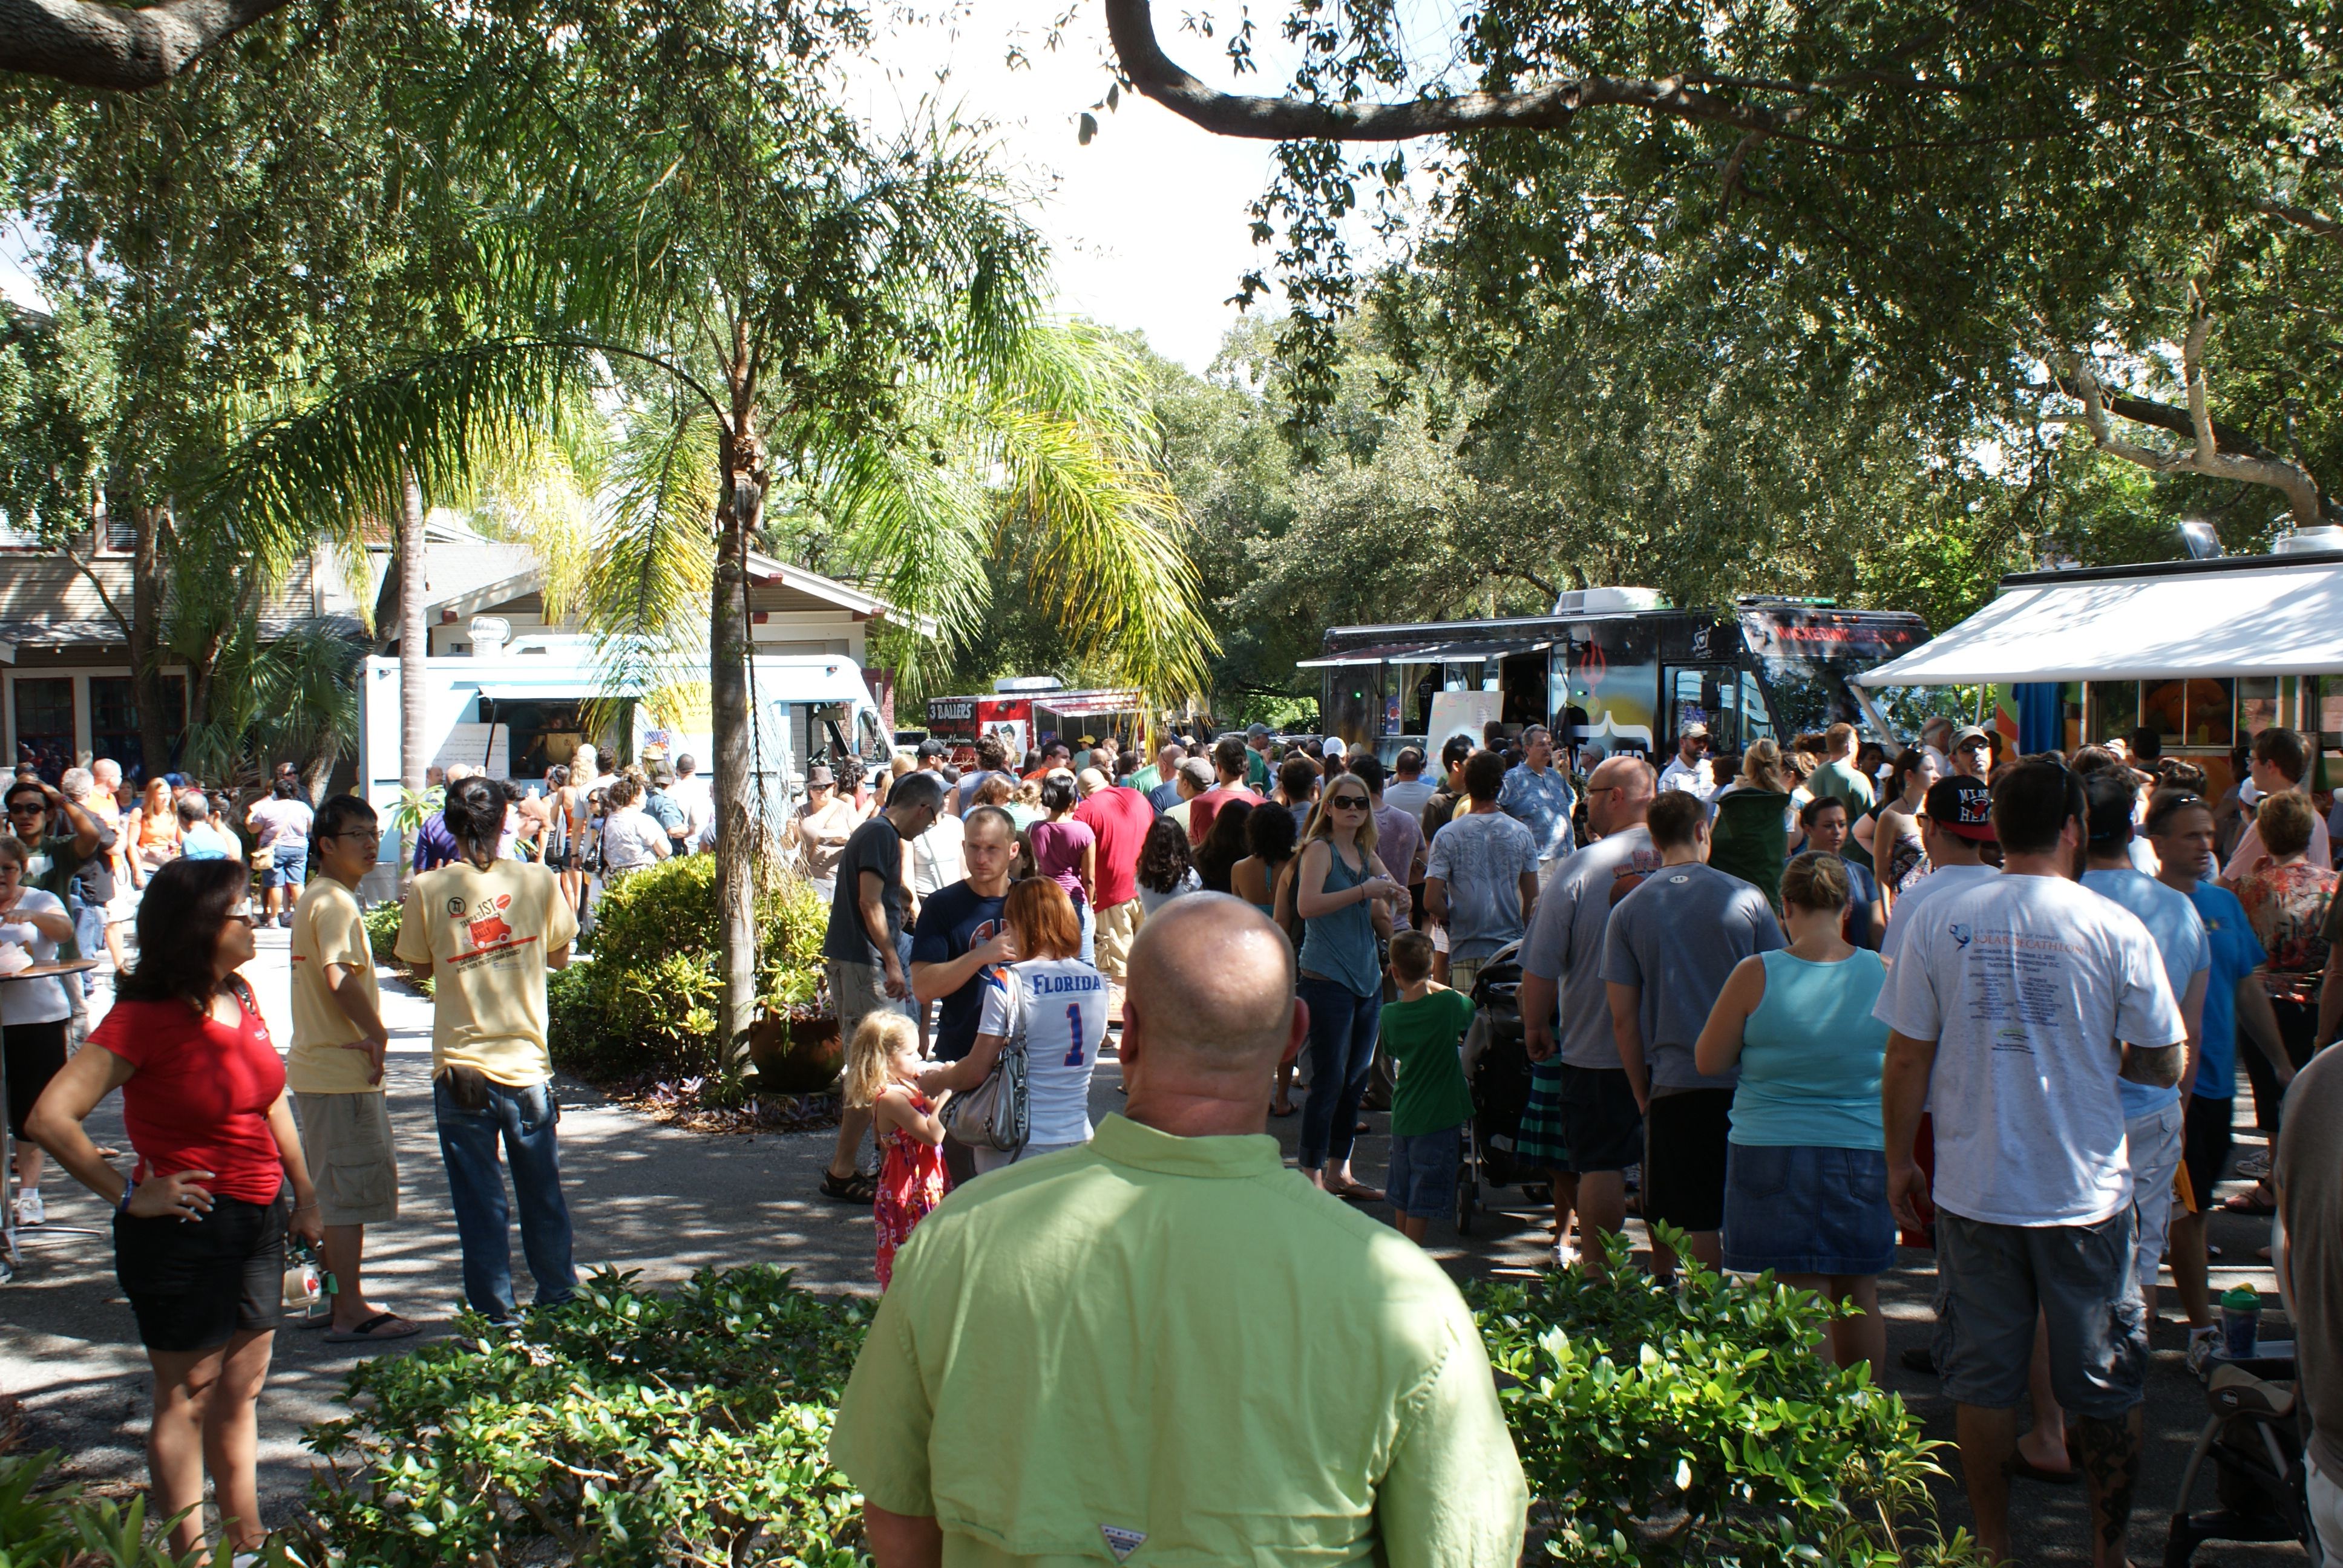 Tampa's First Food Truck Rally